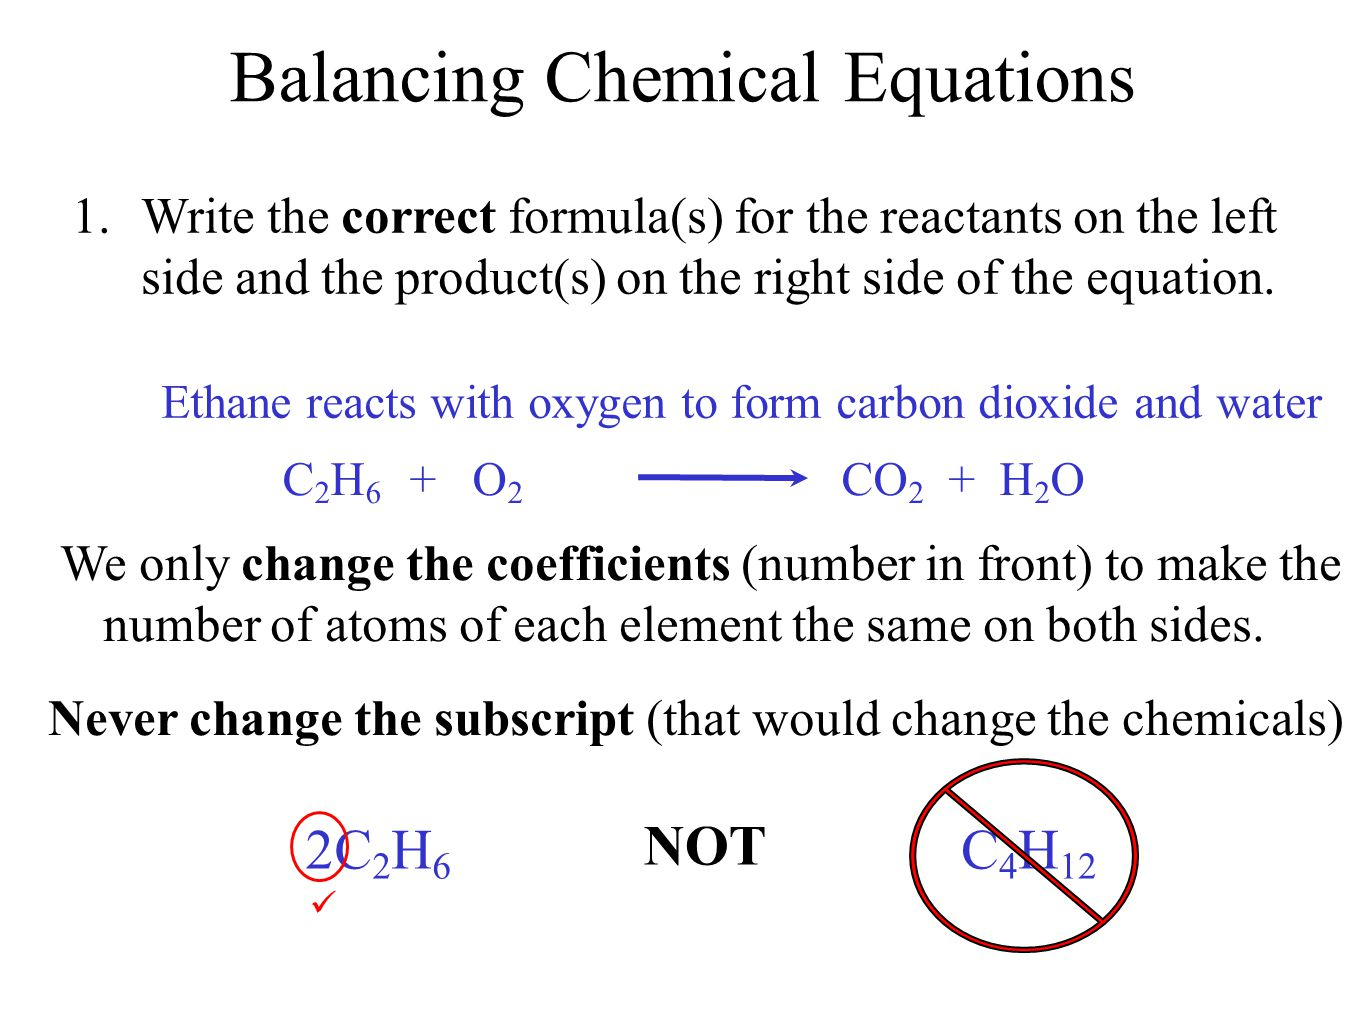 mass relationships in chemical changeslab report Mass relationships in a chemical reaction introduction: the law of conservation of mass dates from antoine lavoisier's 1789 discovery that mass is neither created nor destroyed in chemical reactions.